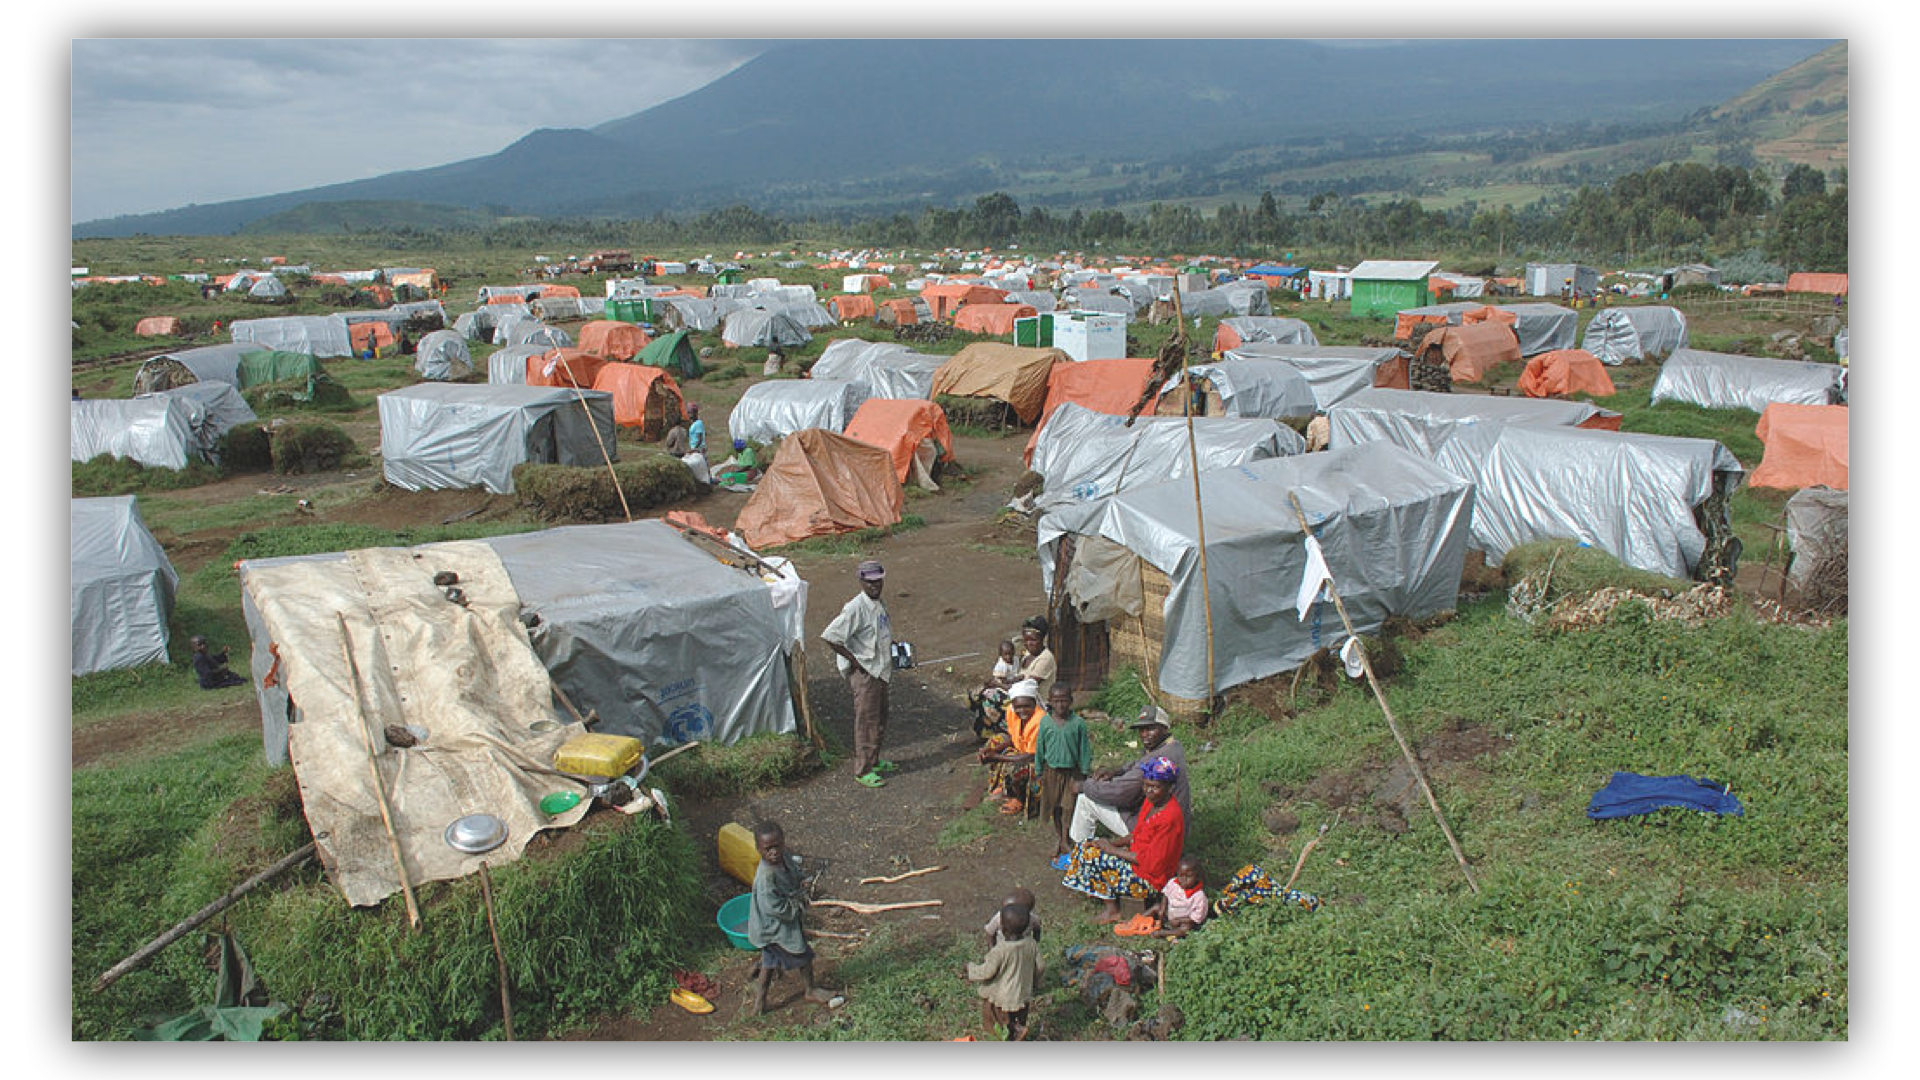 Refugees - A Protracted Refugee Crisis can last up to 20 years. Bay-Build works with local governments to provide durable, flexible infrastructure that uses local resources, and can be relocated or repurposed post-crisis.